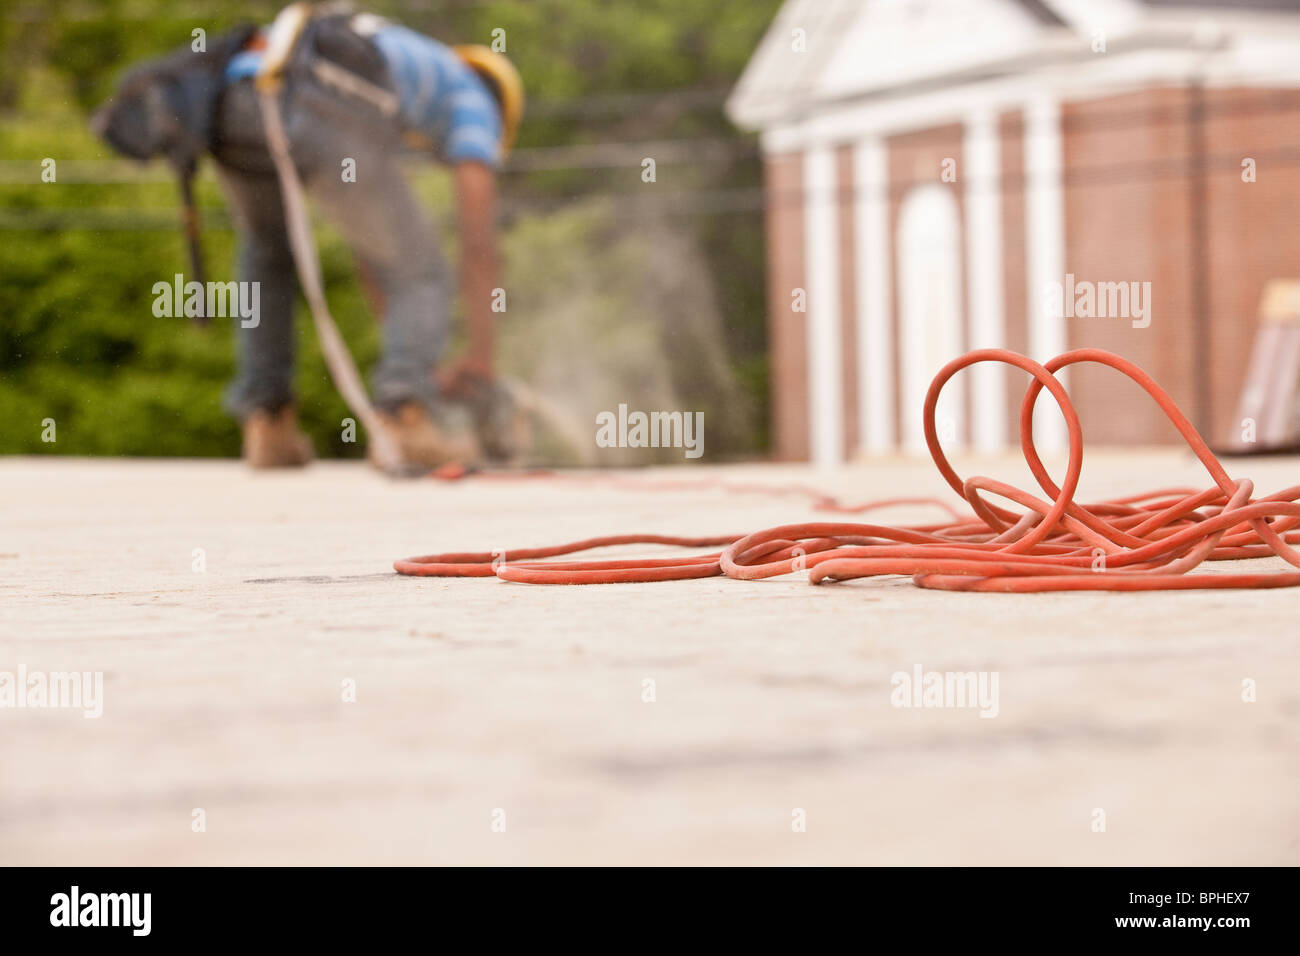 Power cord with a carpenter sawing a board in the background - Stock Image